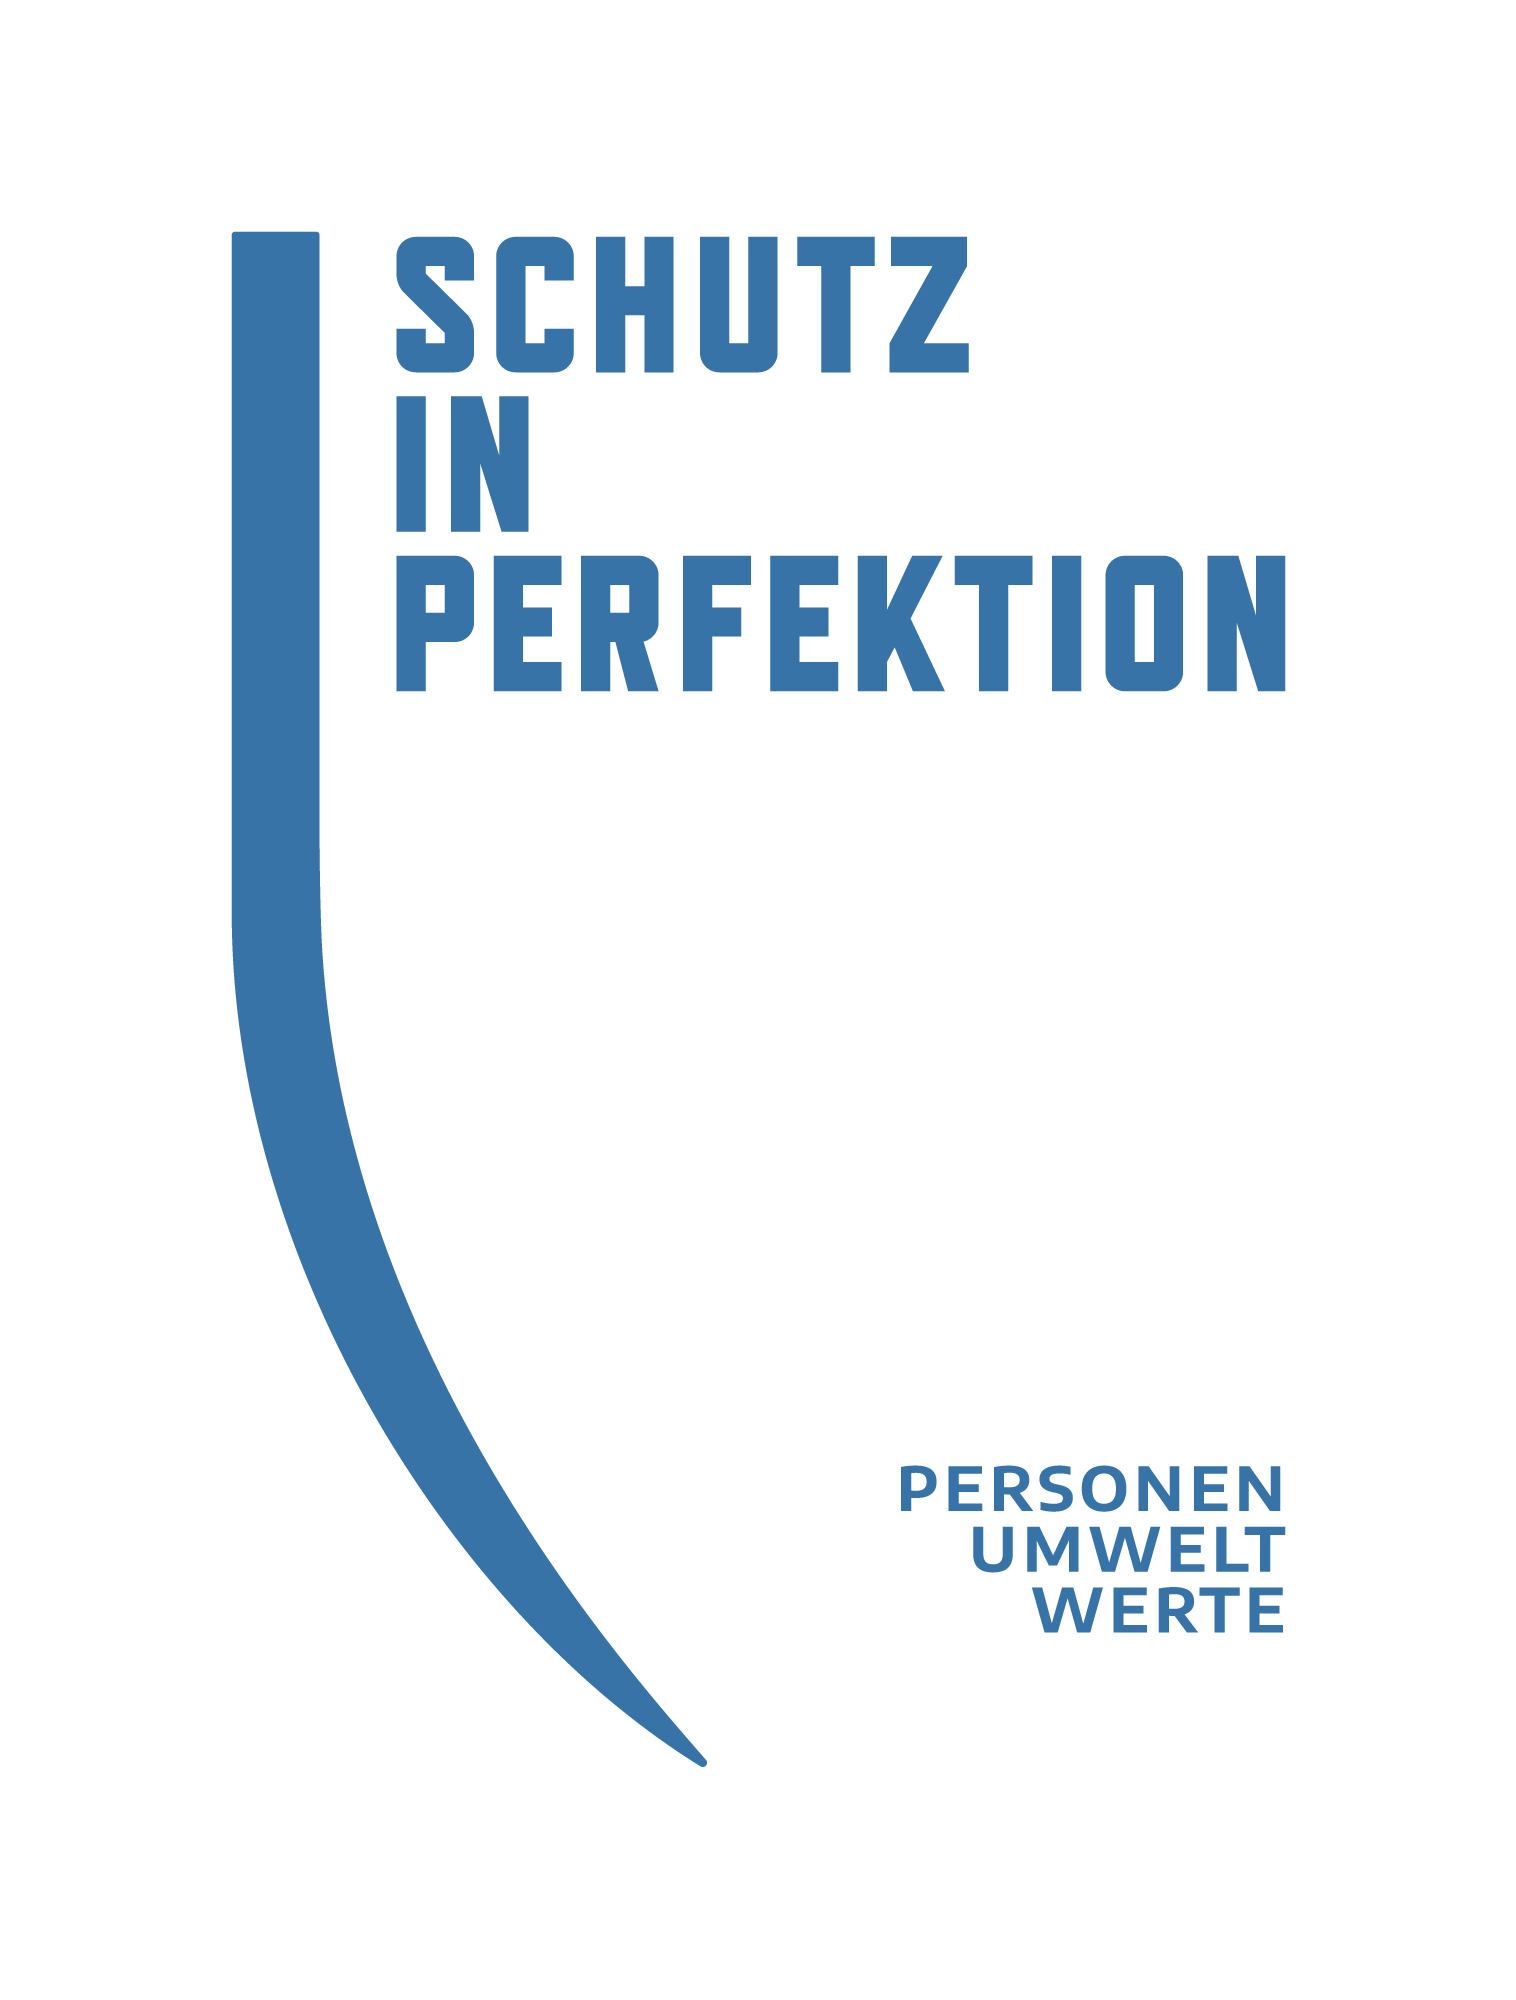 Schutz in Perfektion